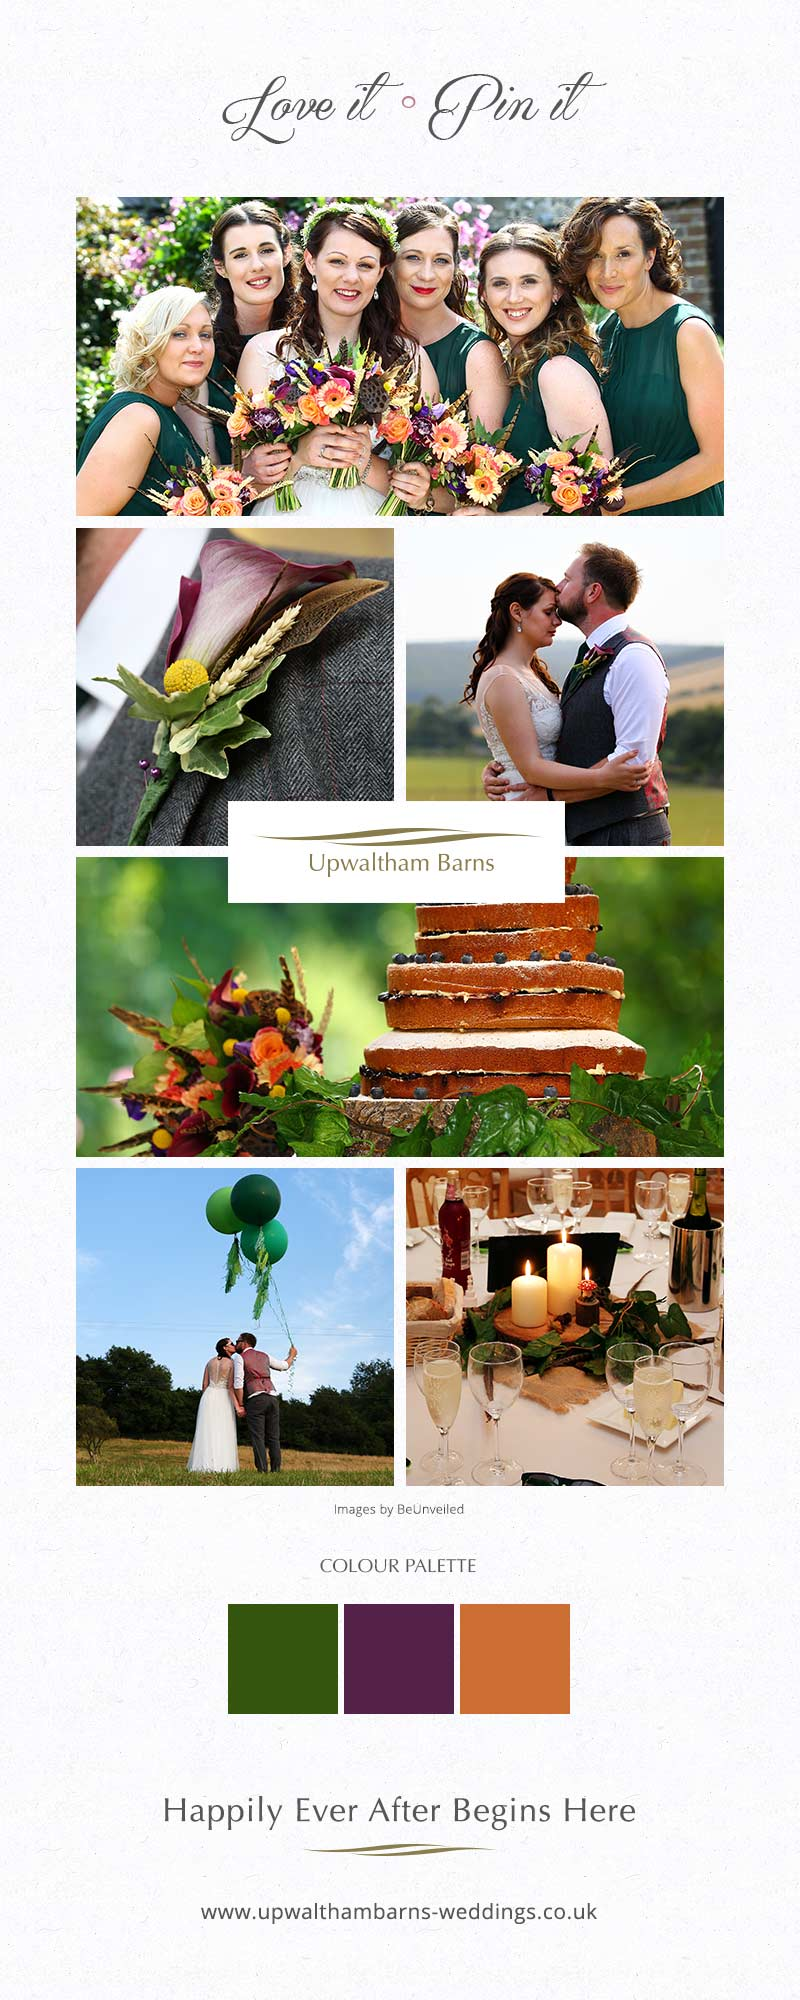 Danielle and Matthew's real life wedding at Upwaltham Barns